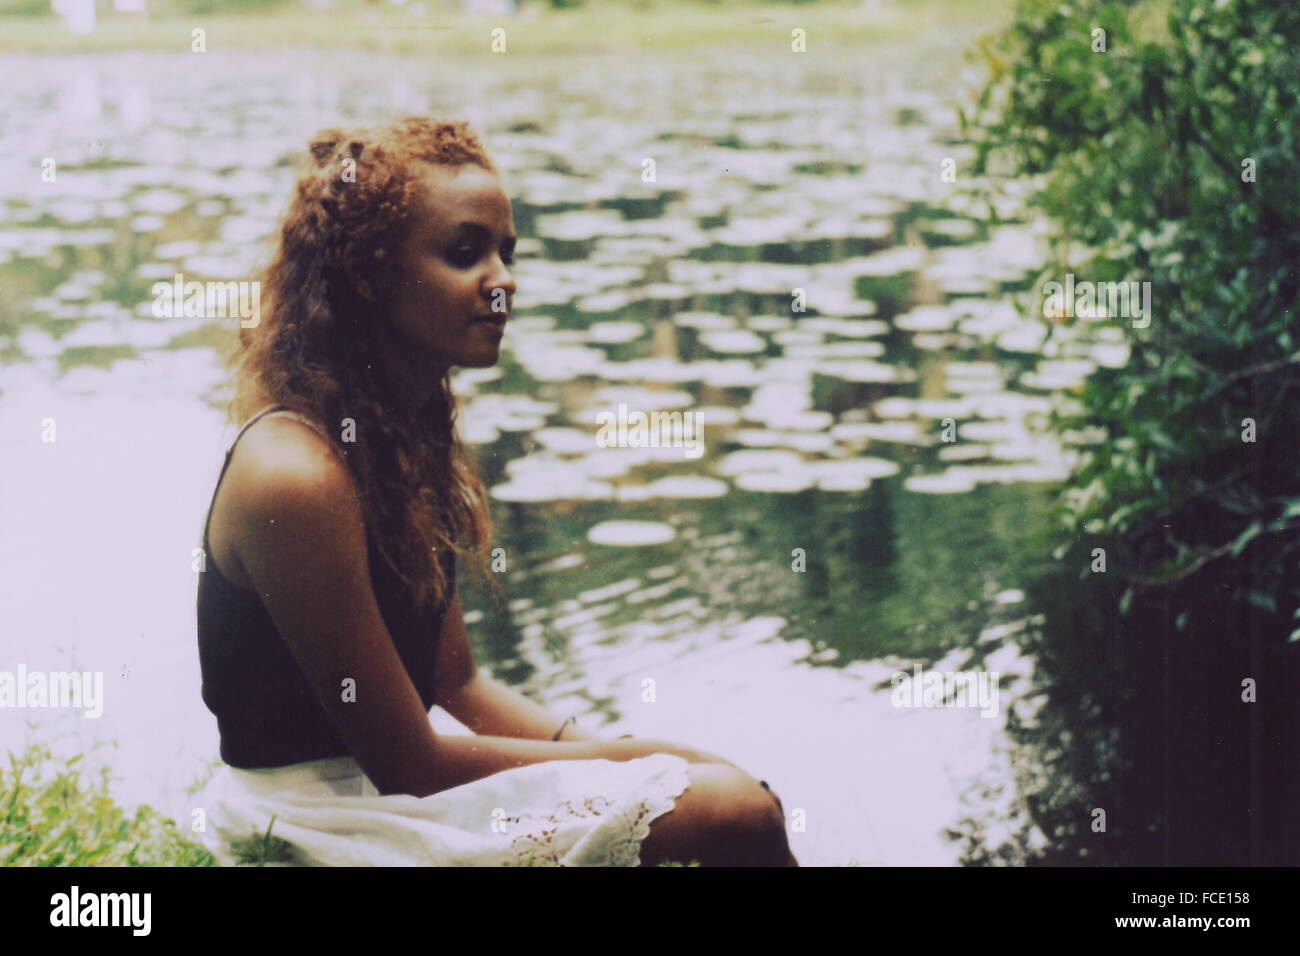 Smiling Teenage Girl Looking Away By Lake - Stock Image